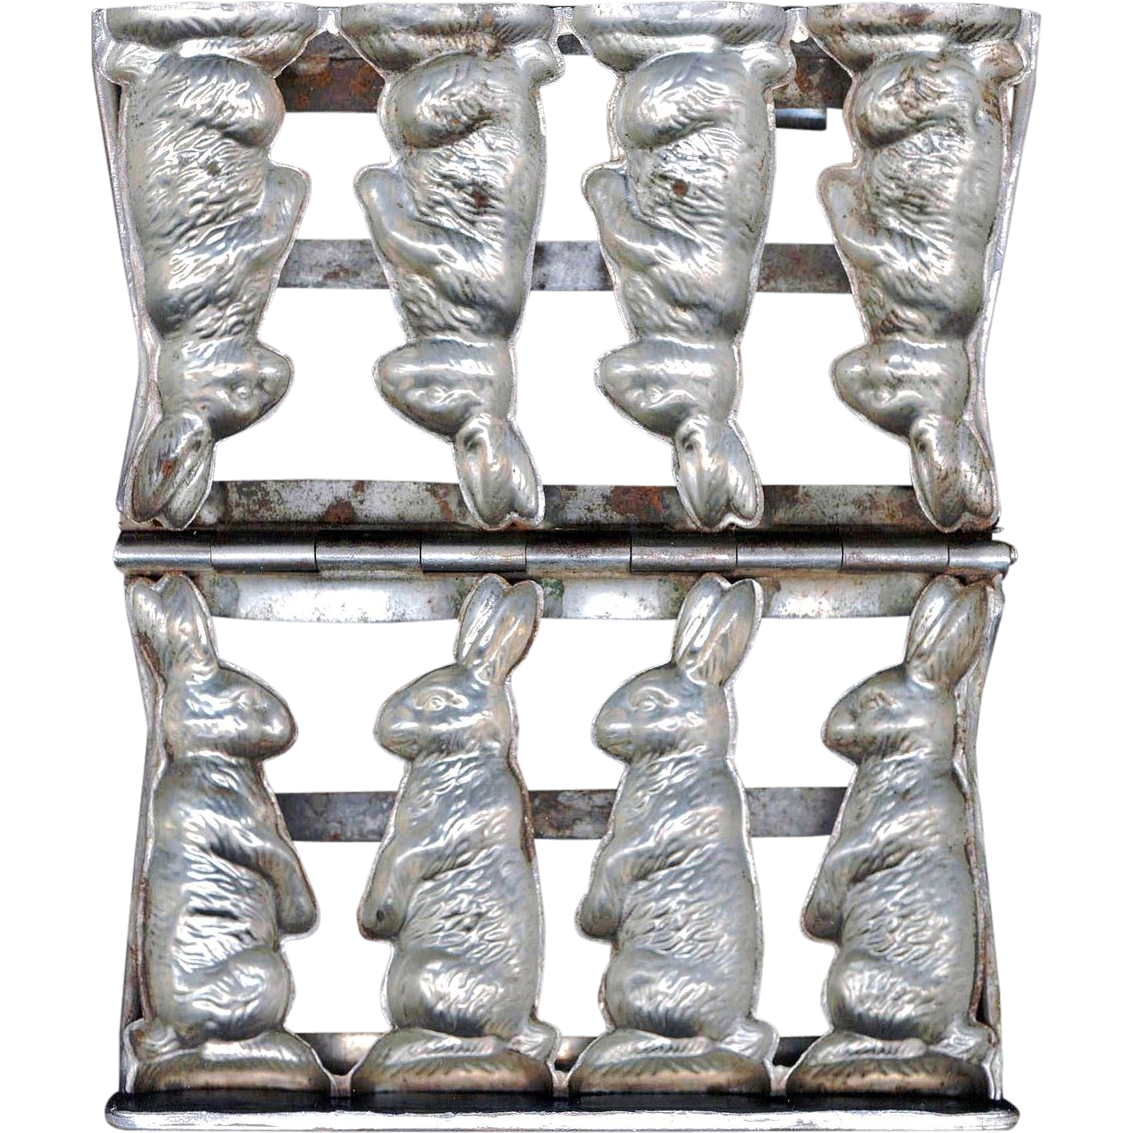 1929 Anton Reiche German Easter Rabbit Chocolate Mold - Mould No. 6310 Classic Sitting Hare - Set of Four in a Hinged Pewter Frame